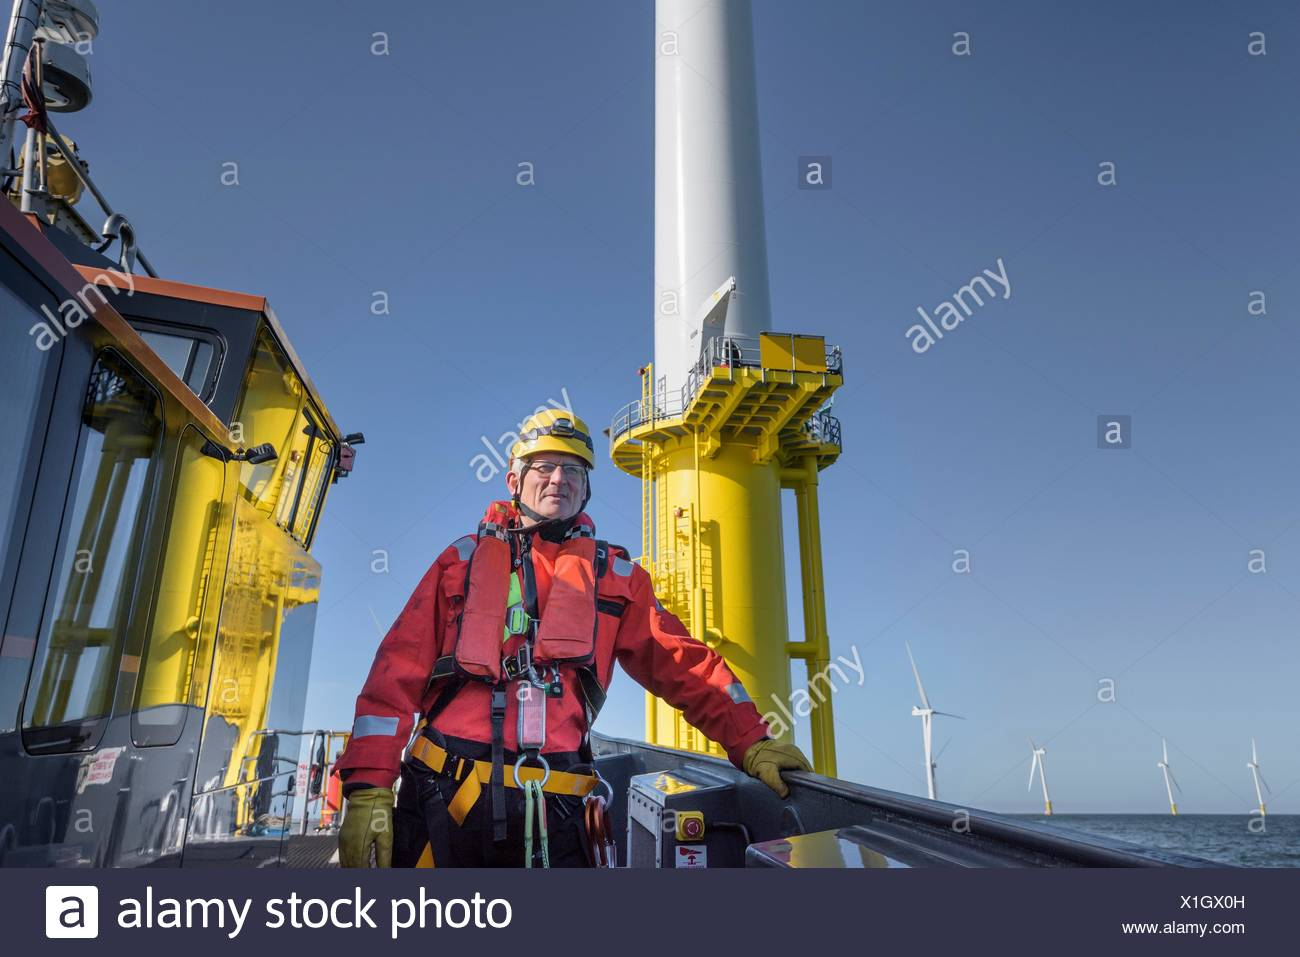 Portrait of engineer on boat on offshore wind farm - Stock Image